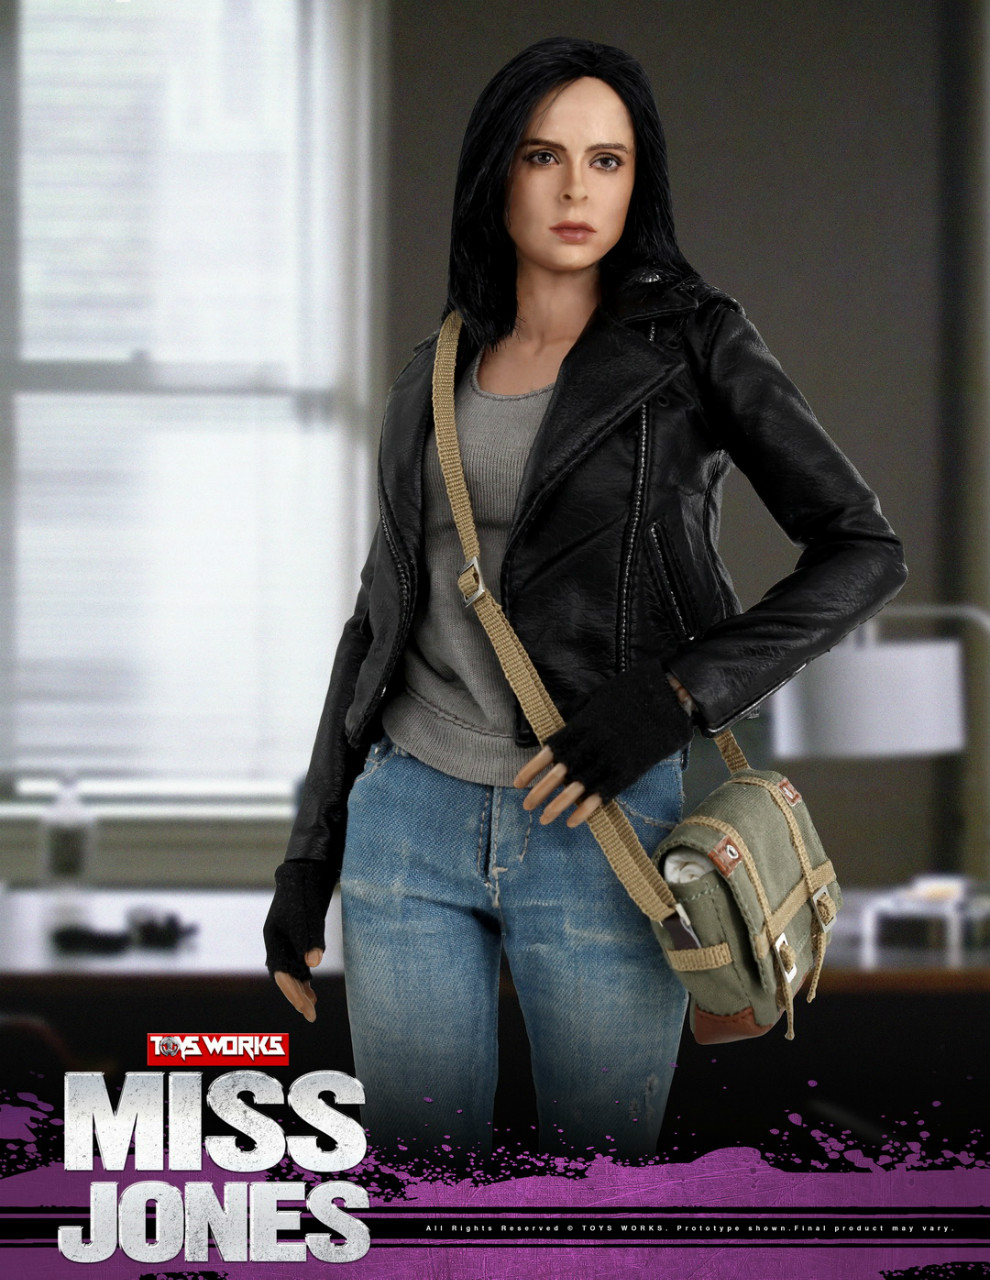 NEW PRODUCT: TOYS WORKS New: 1/6 Miss Jones Miss Jones can move TW007 19163616